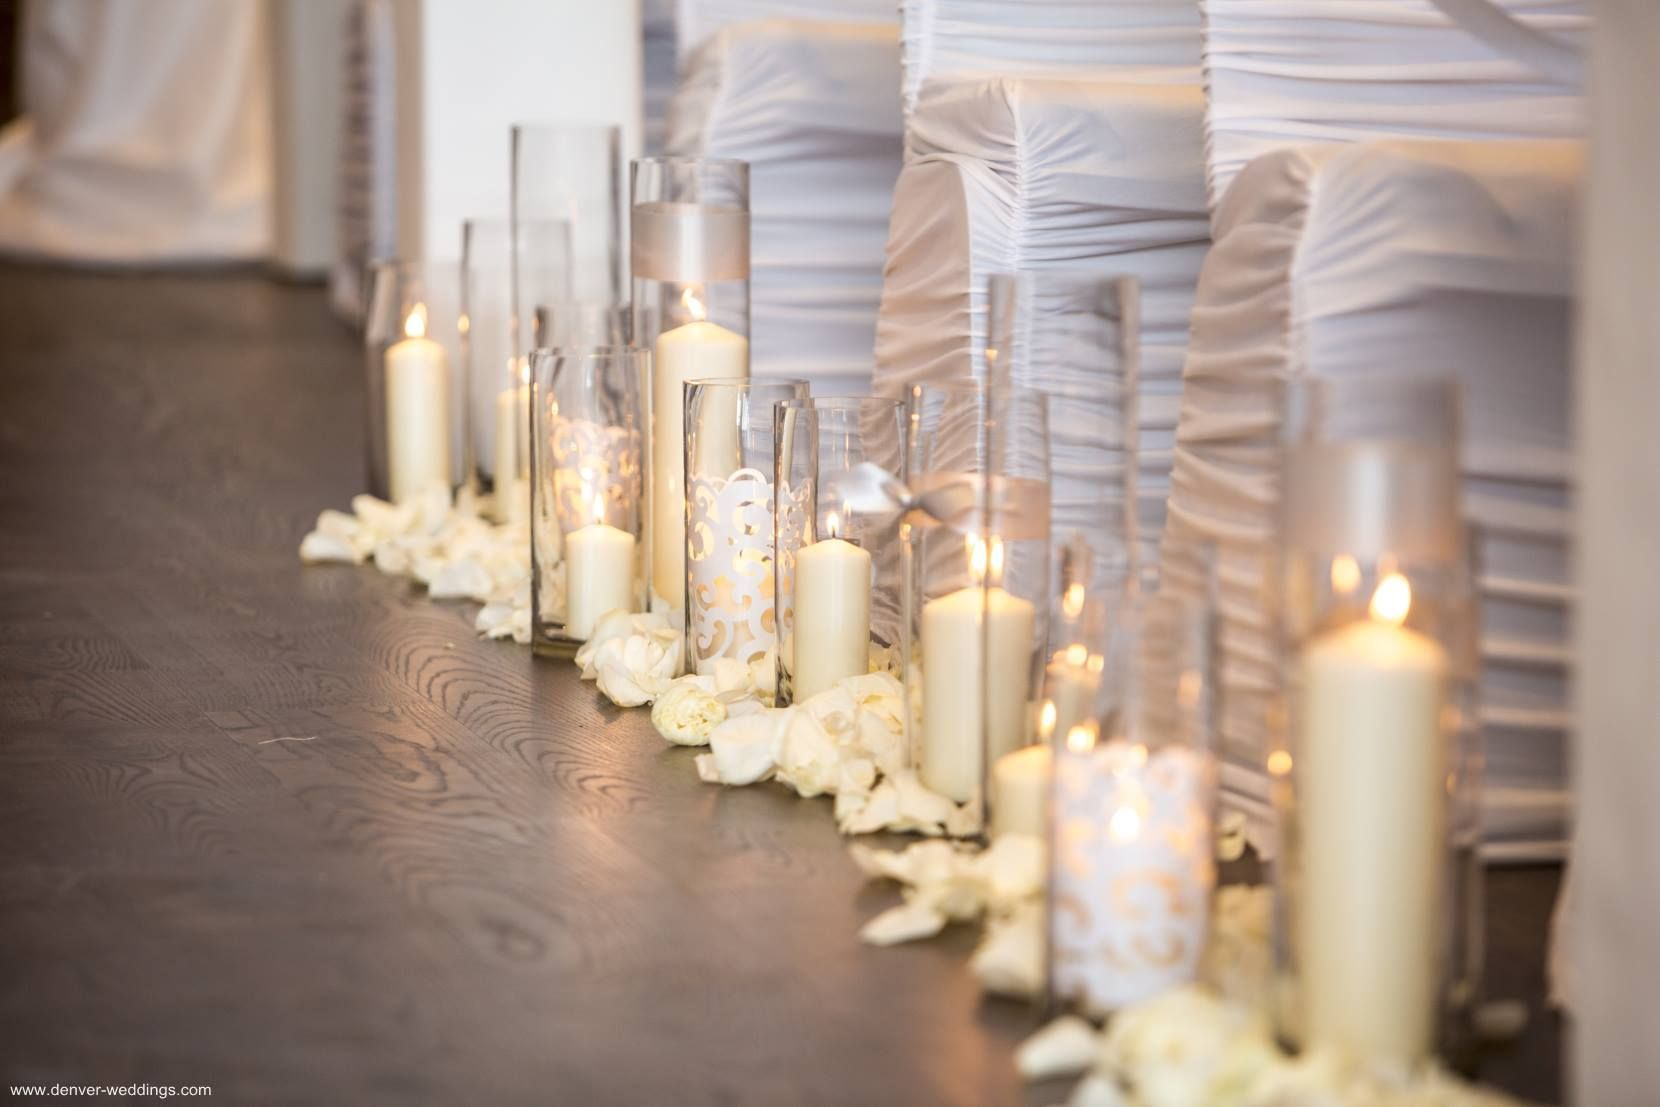 Candlelight Wedding Ceremony Candles Down Aisle